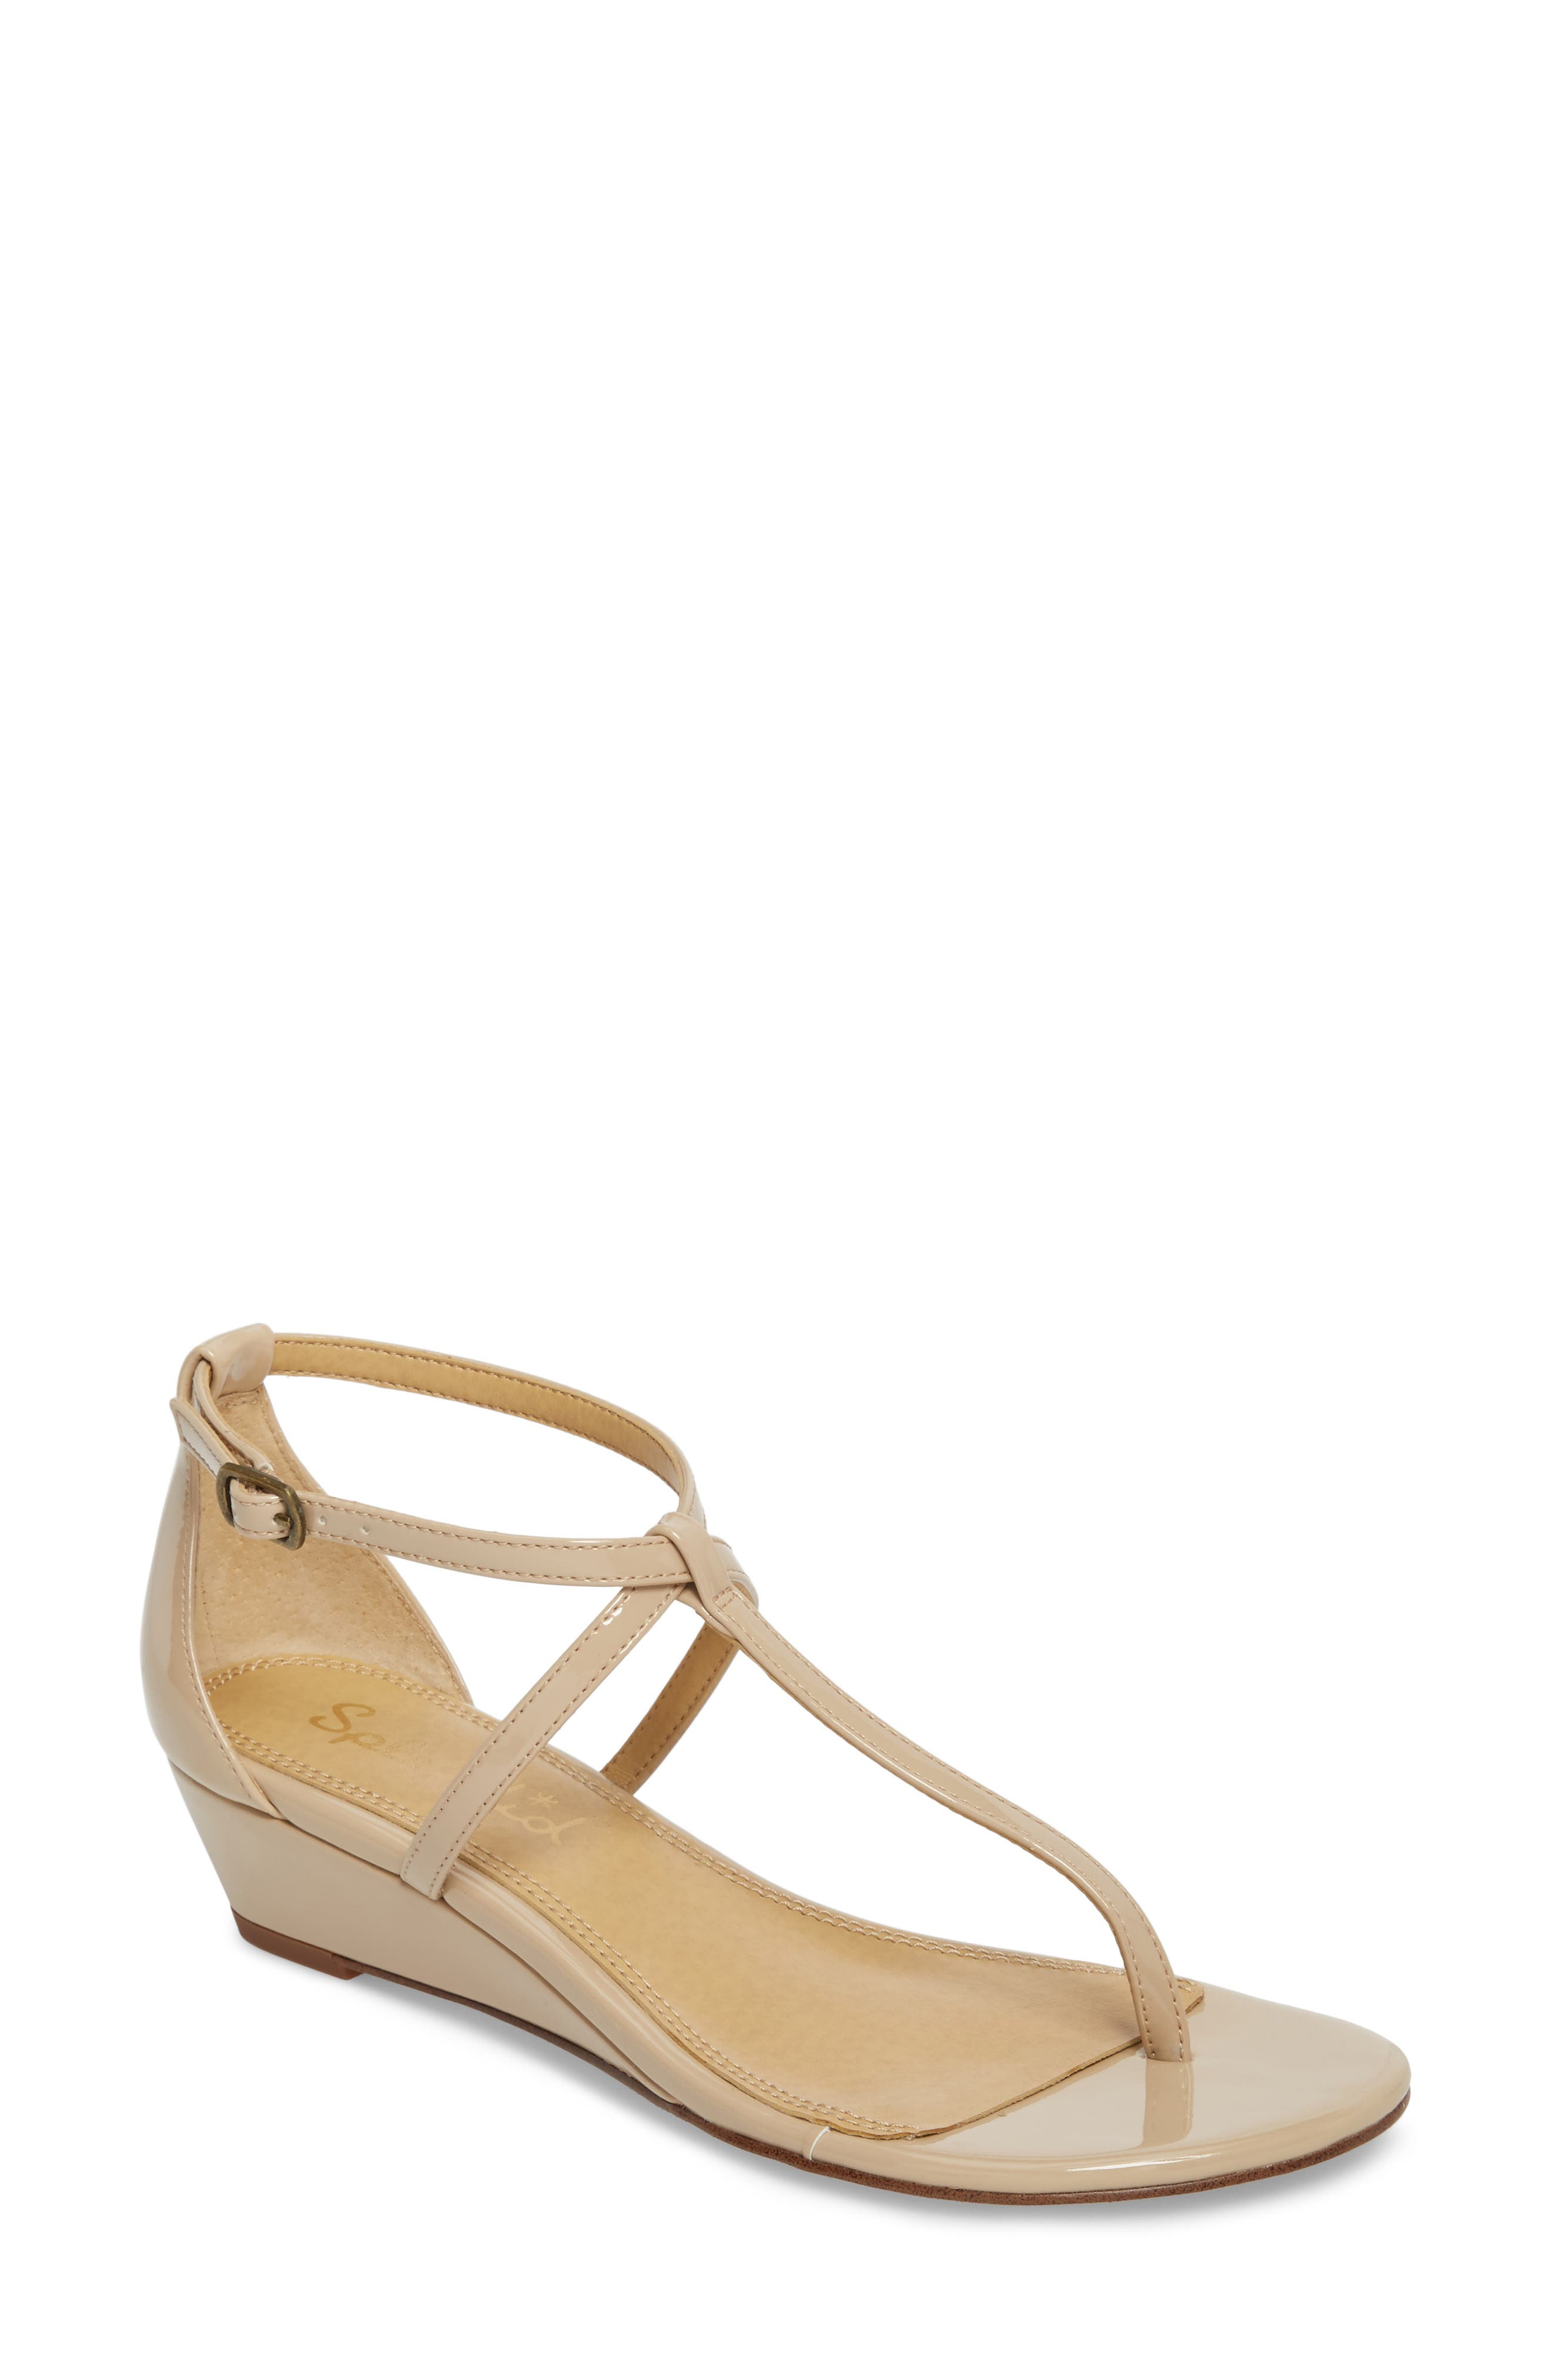 Bryce T-Strap Wedge Sandal,                             Main thumbnail 3, color,